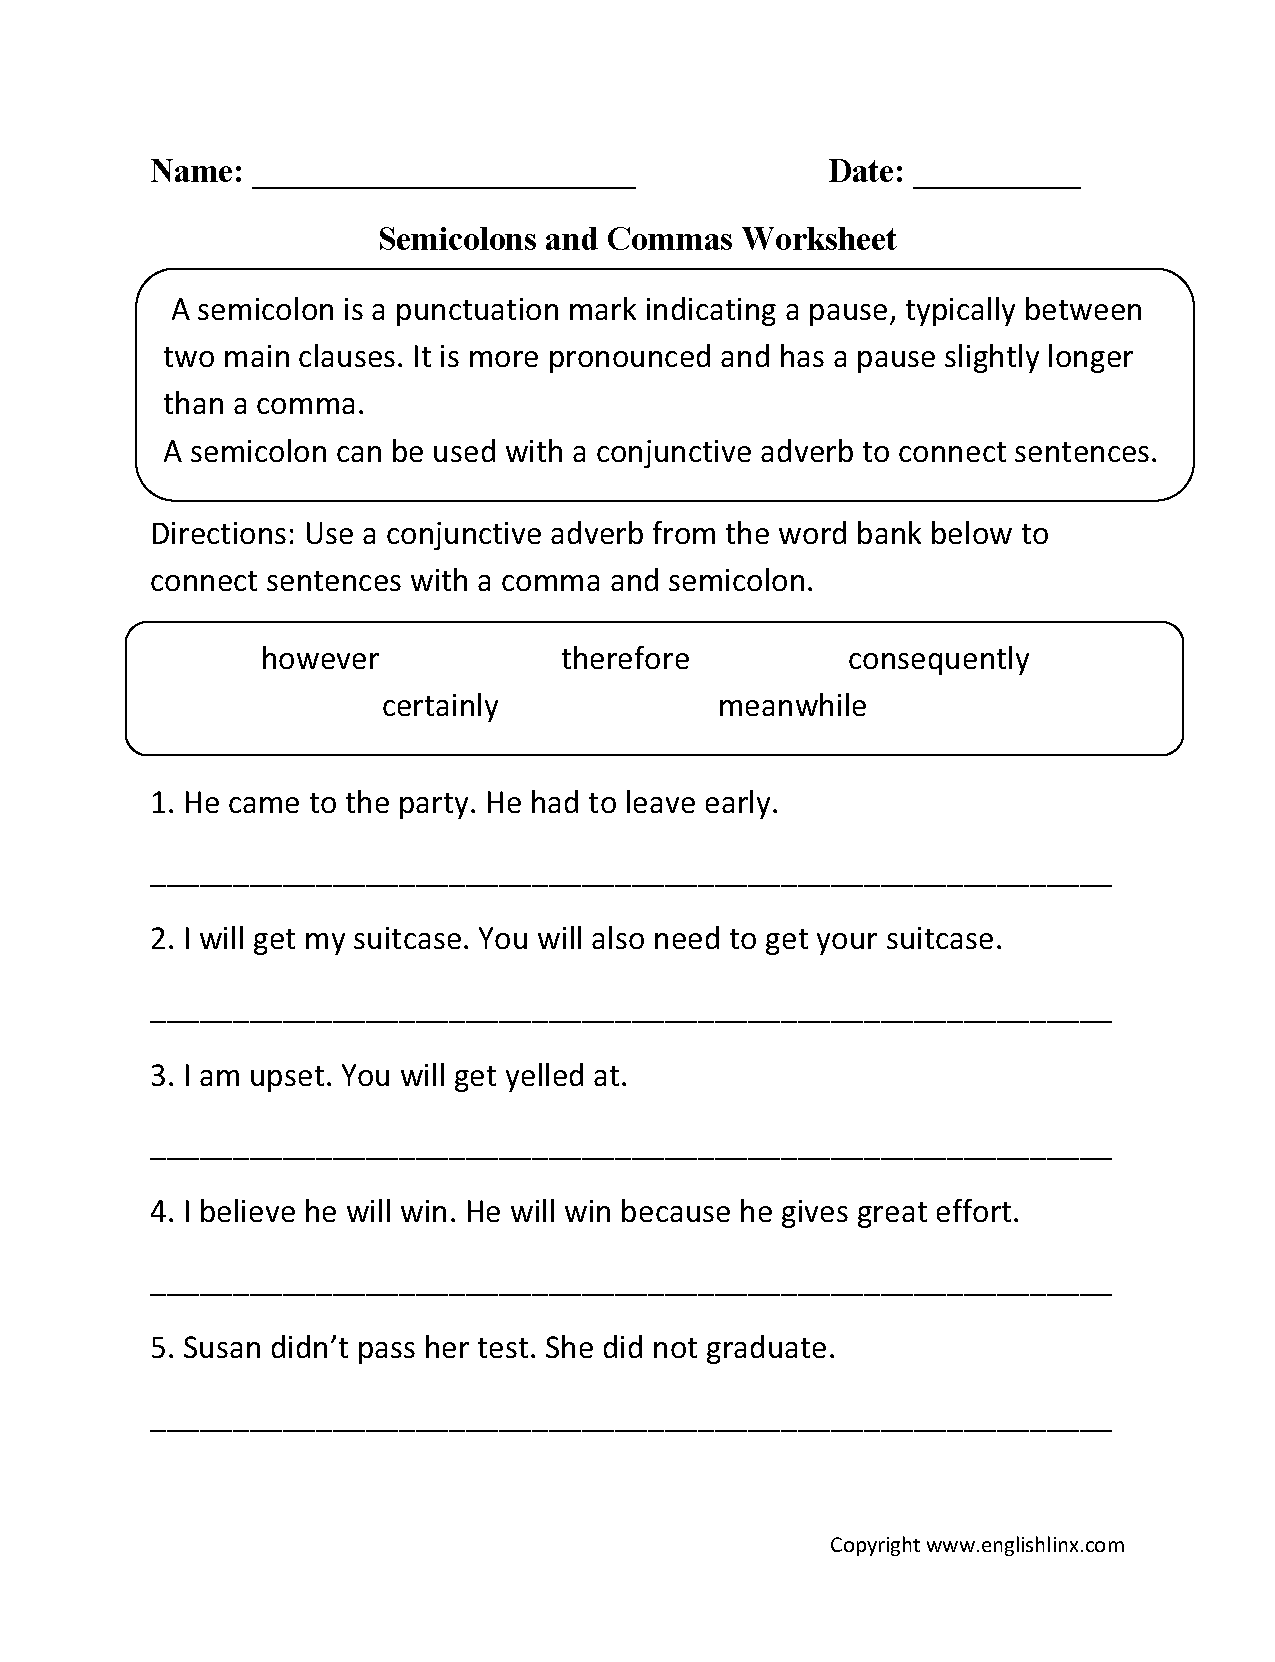 worksheet Conjunctive Adverbs Worksheet punctuation worksheets semicolon worksheet